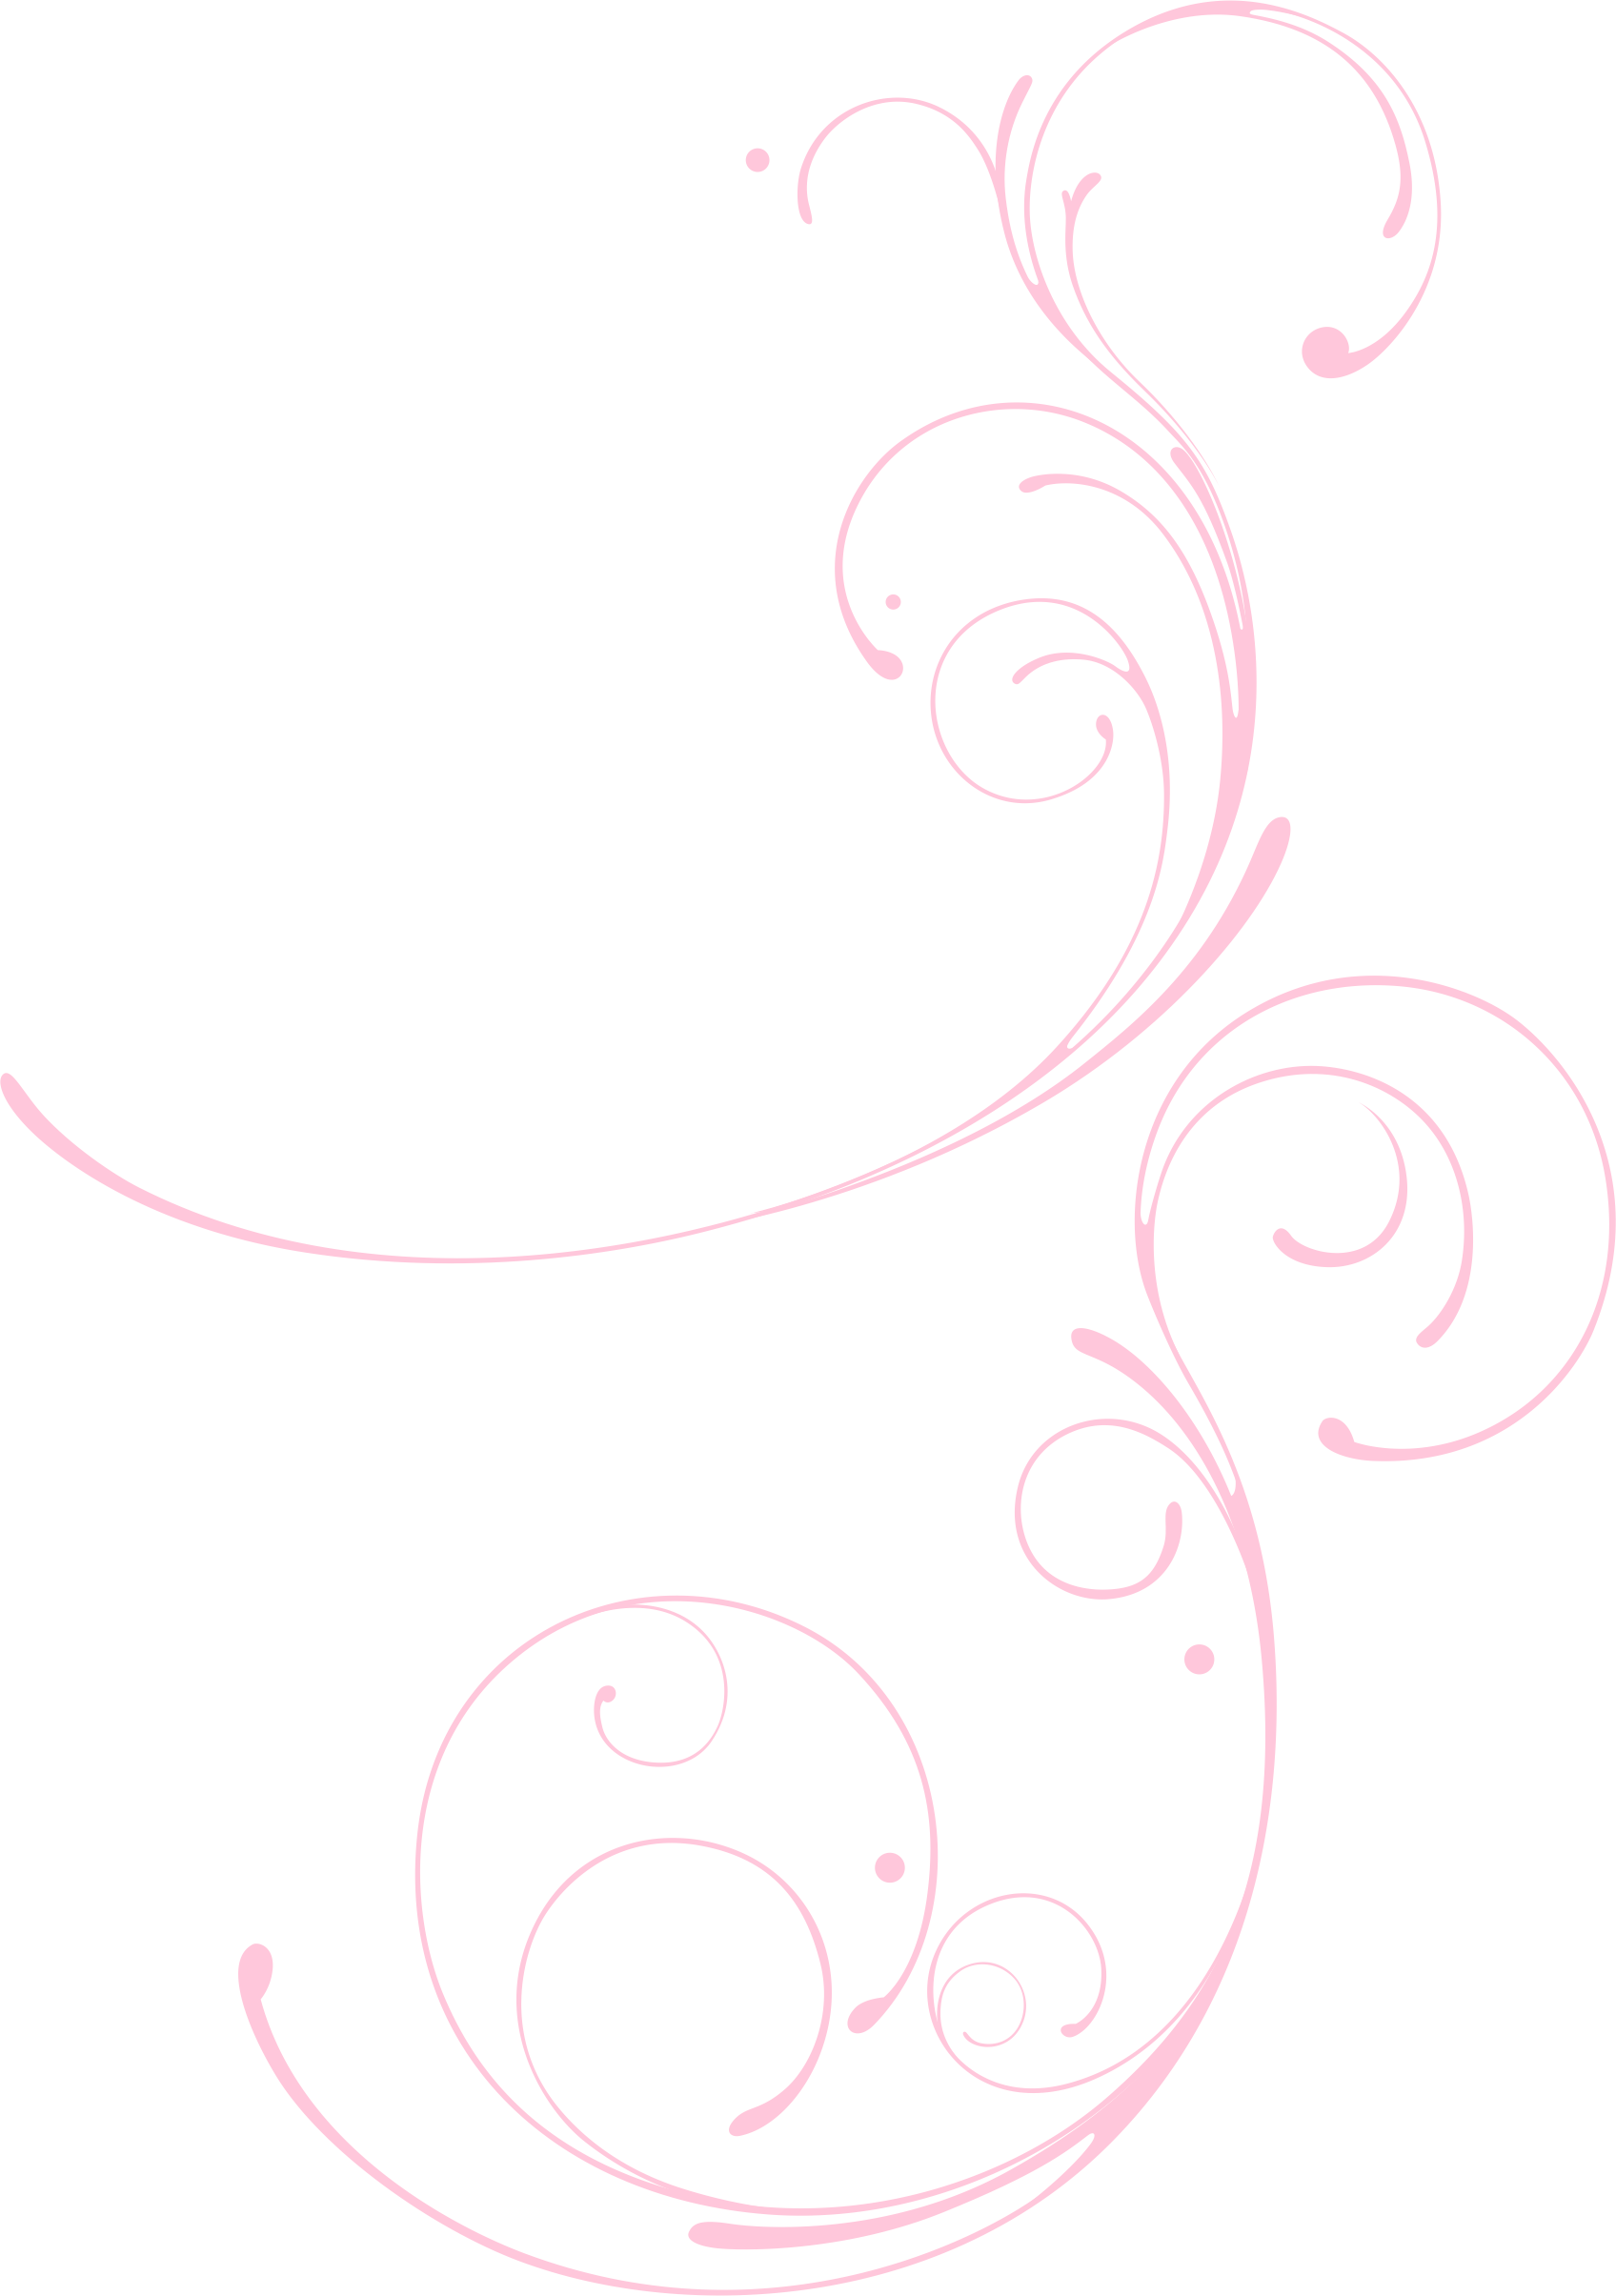 Petal drawing circle. Pattern pink line transprent